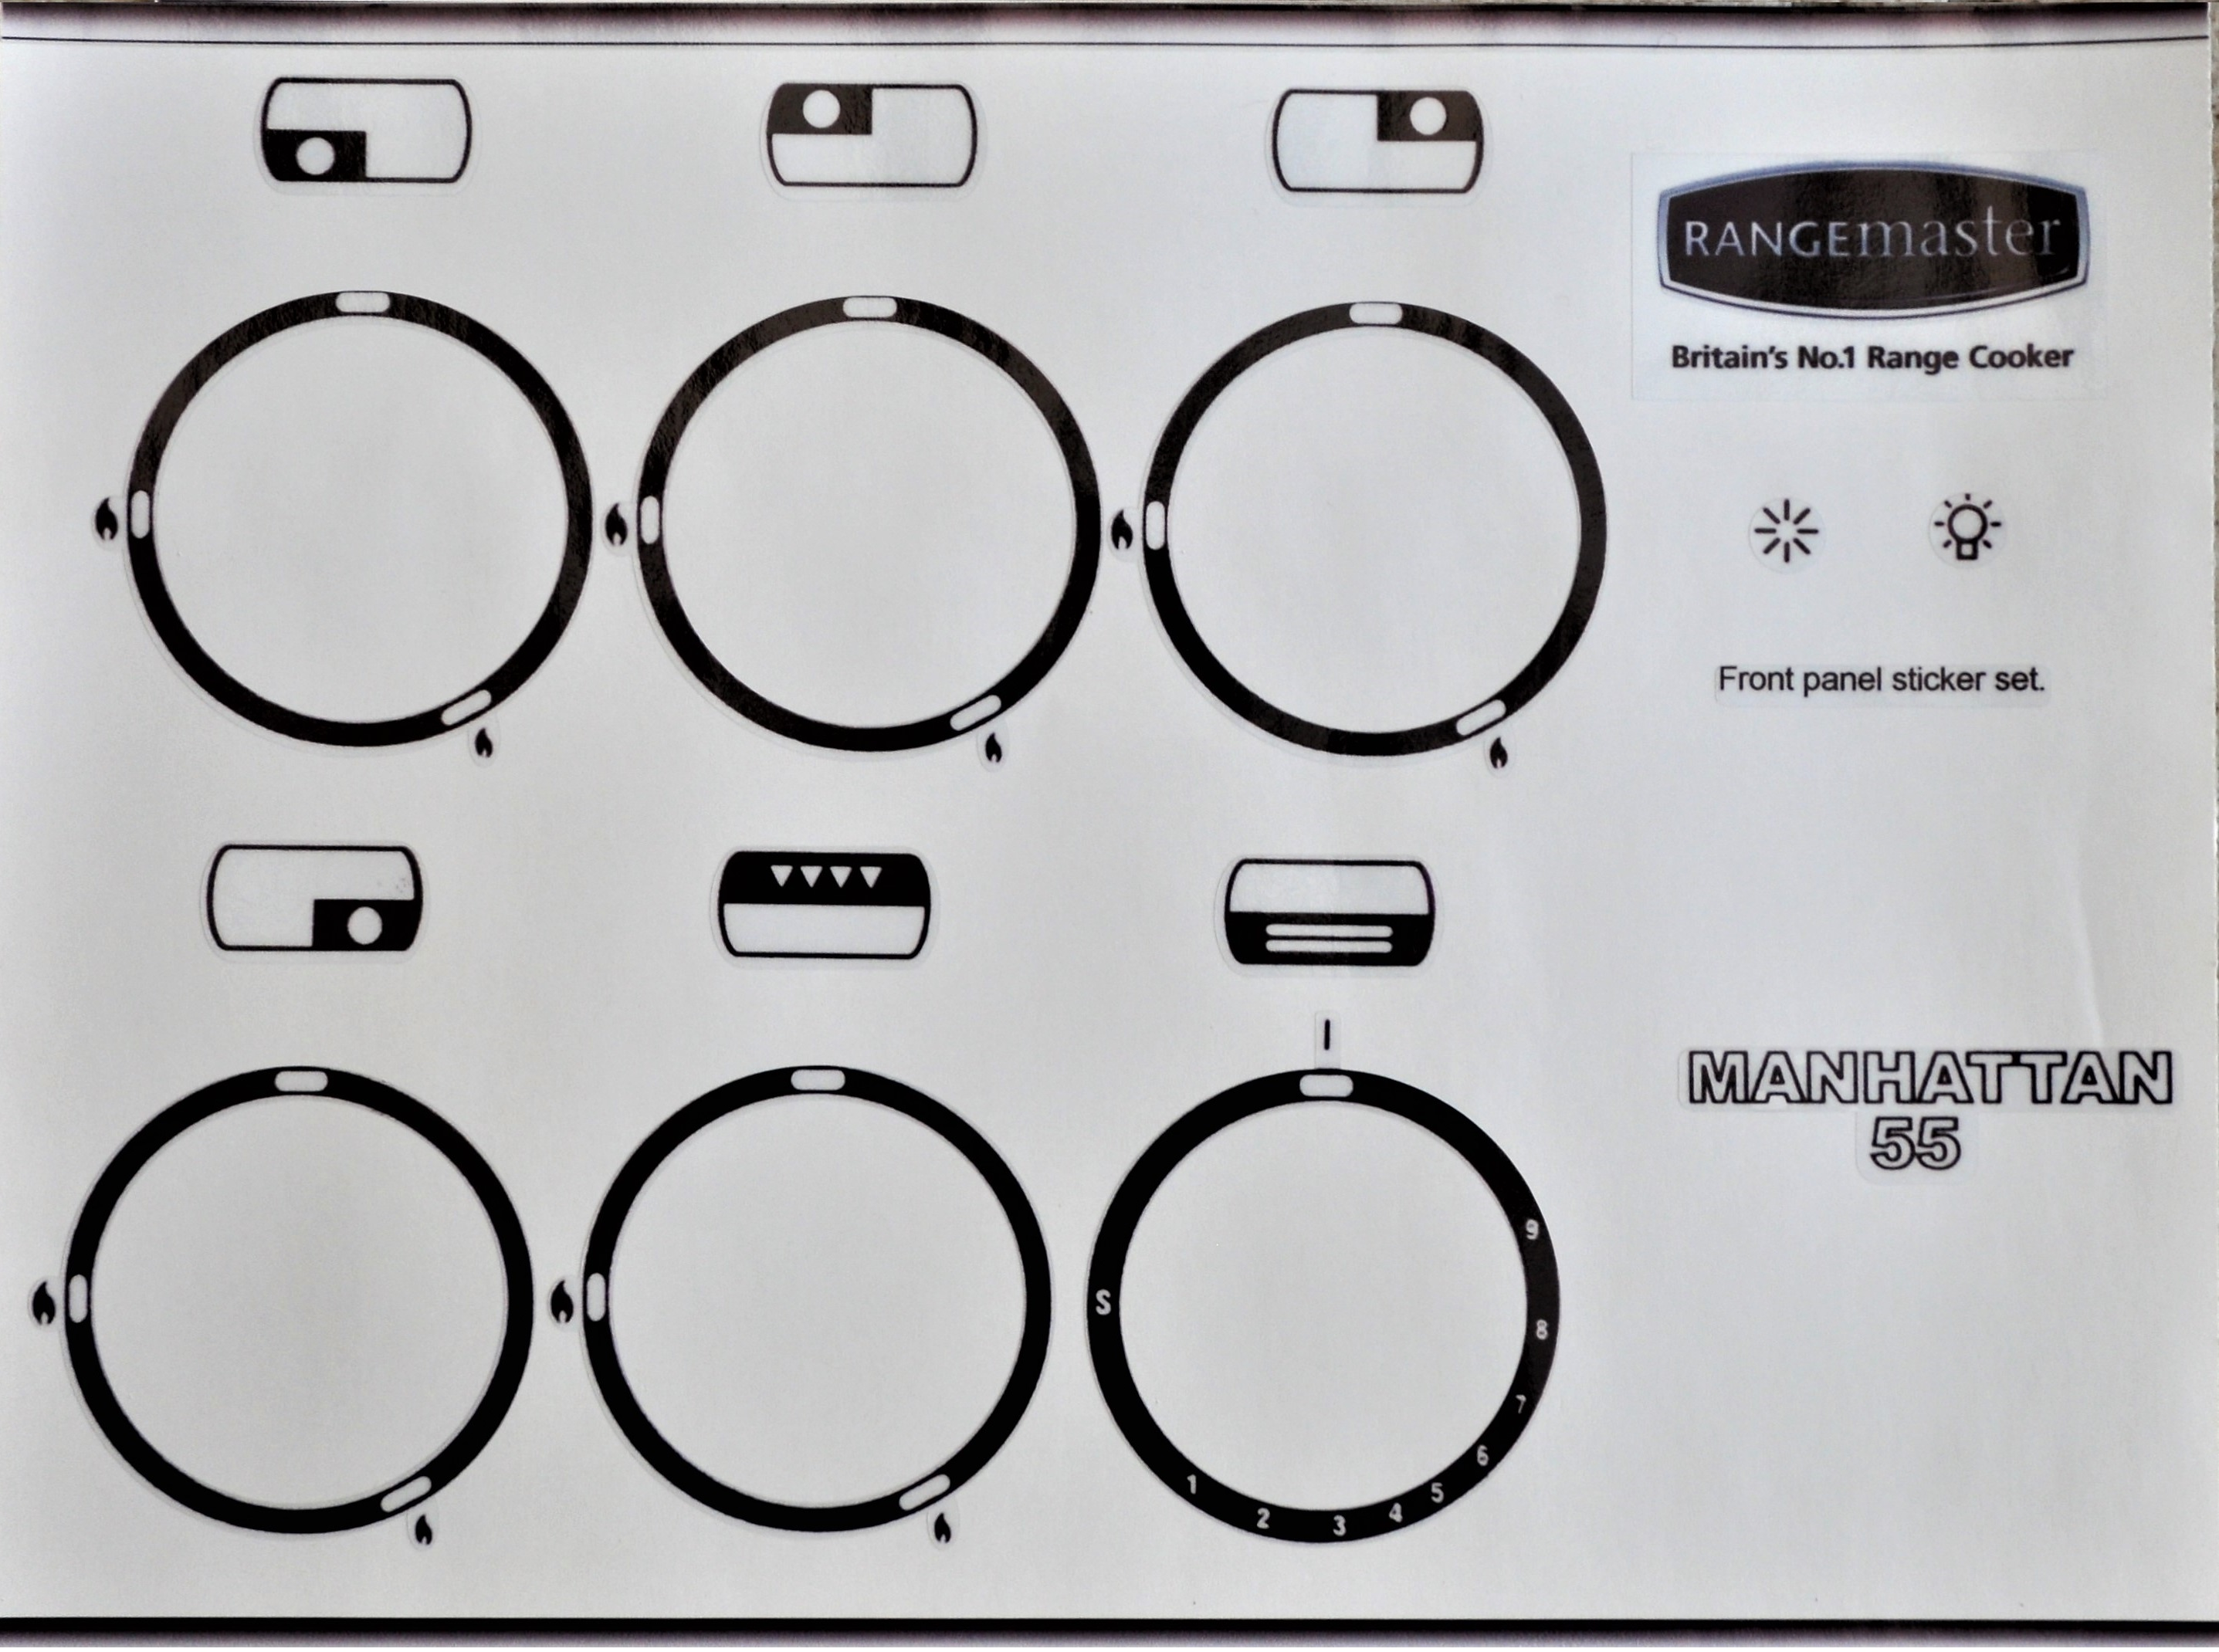 Rangemaster Manhattan 55 cooker front panel sticker set.